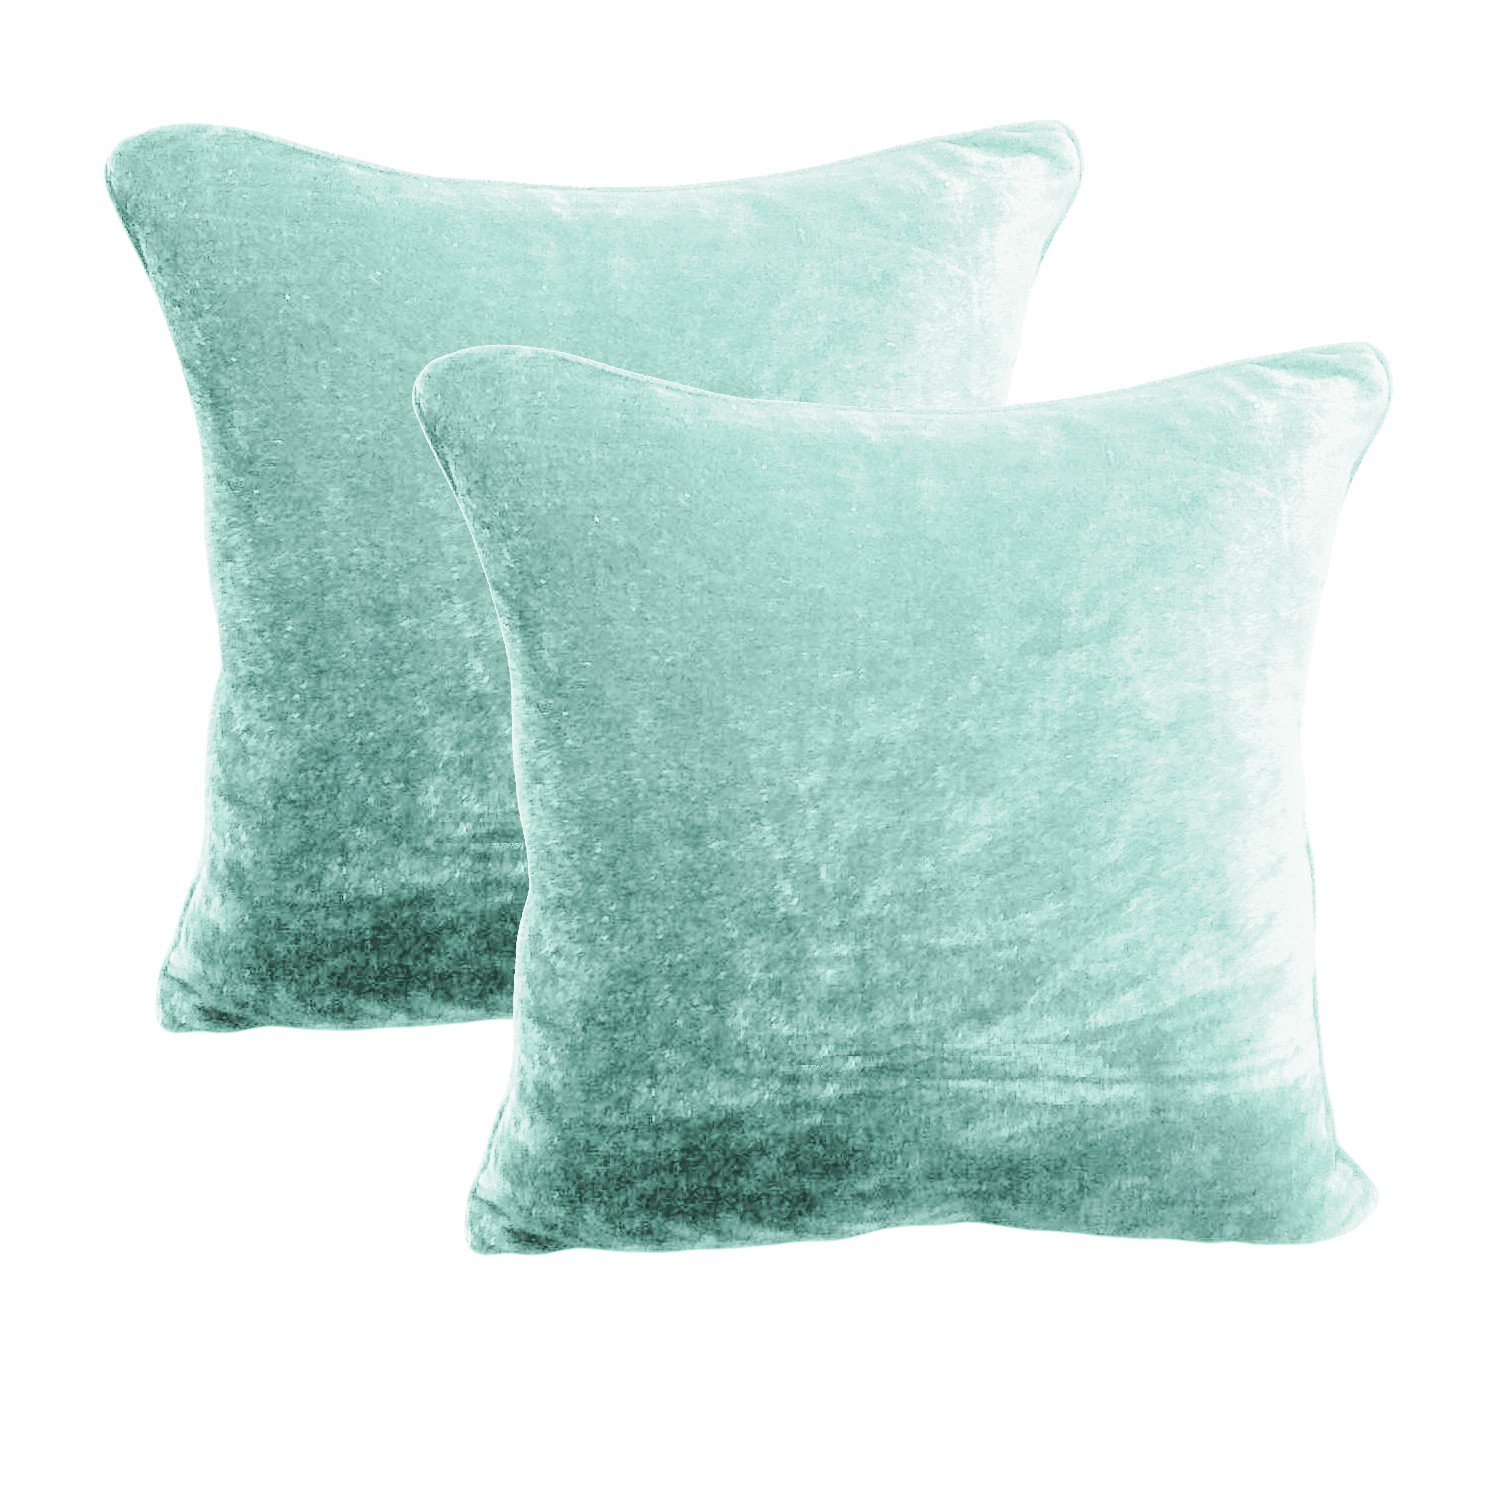 26 by 26 INCHES - 100% COTTON VELVET 6PC ZIPPER PILLOW COVER SHAMS EURO AQUA